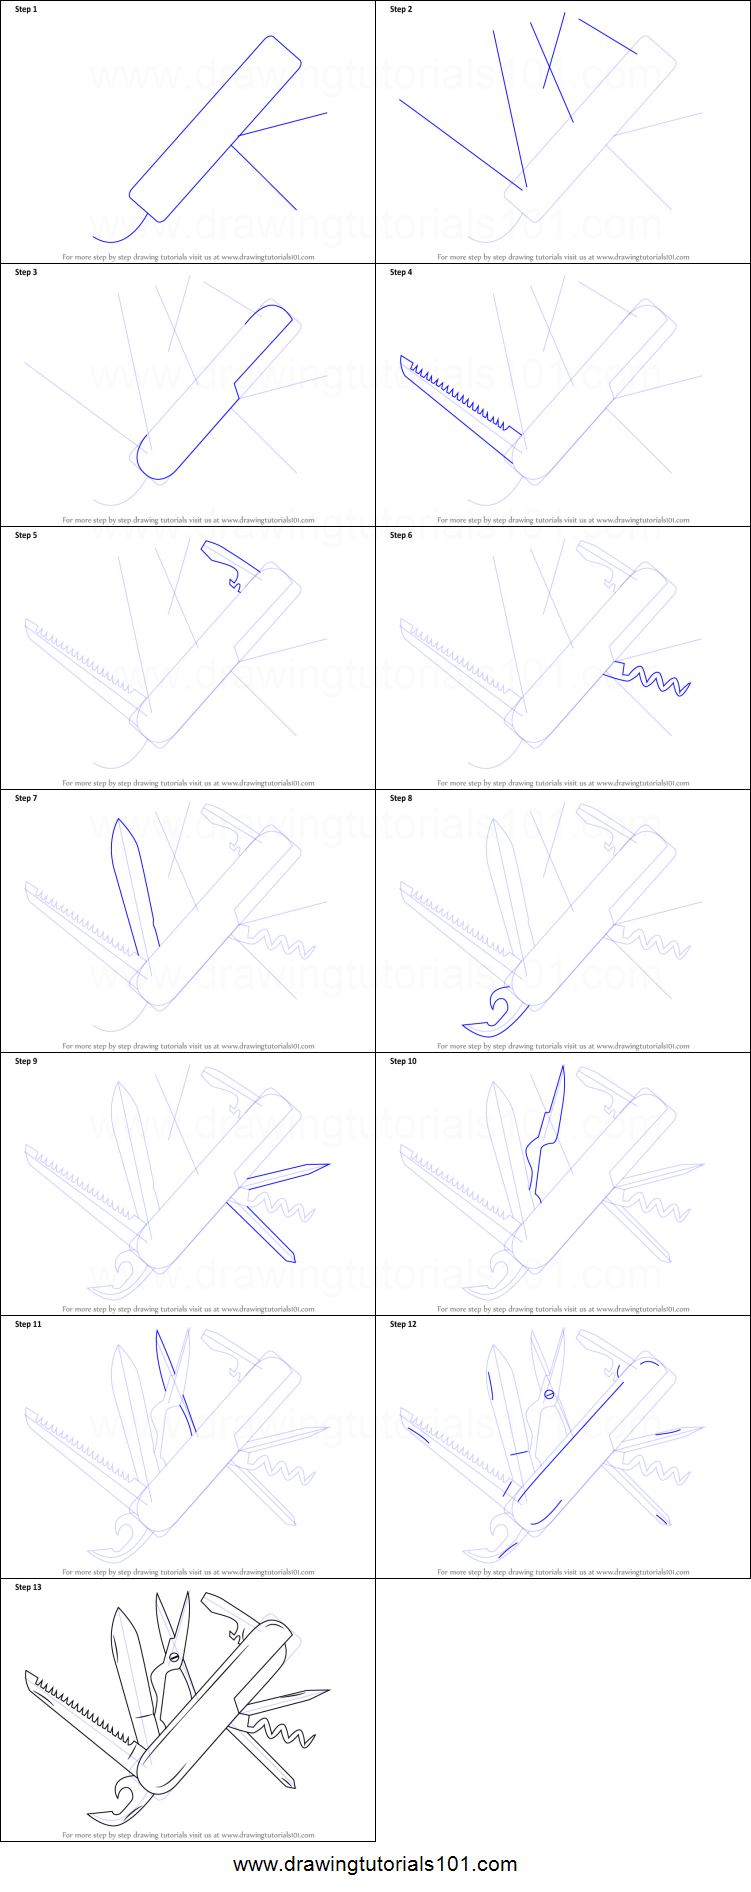 How To Draw Swiss Army Knife Printable Step By Step